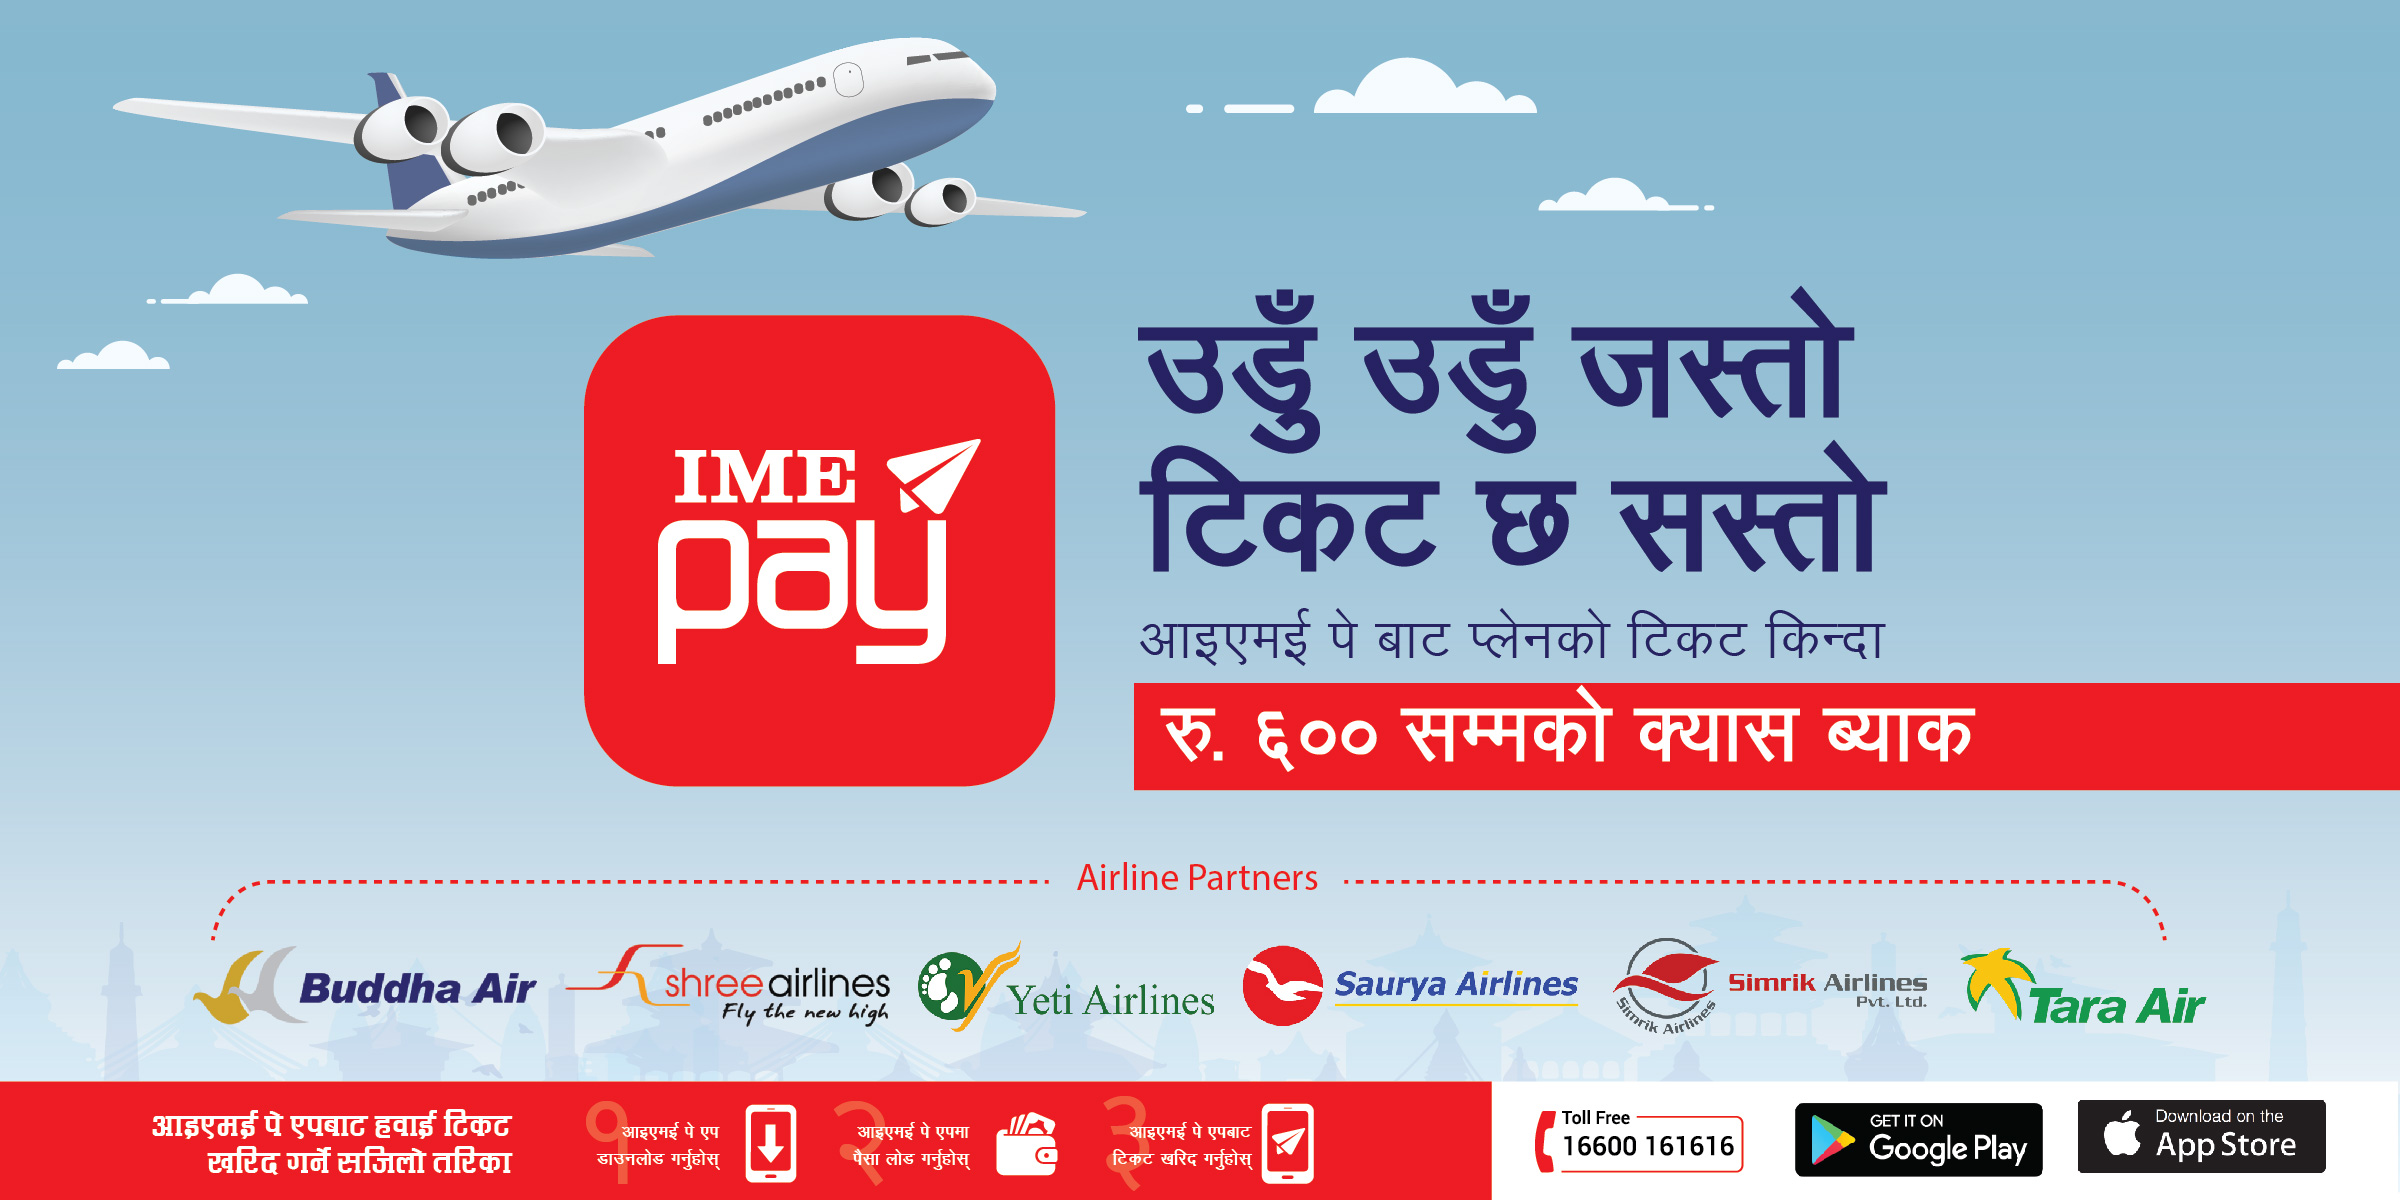 IME Pay-02